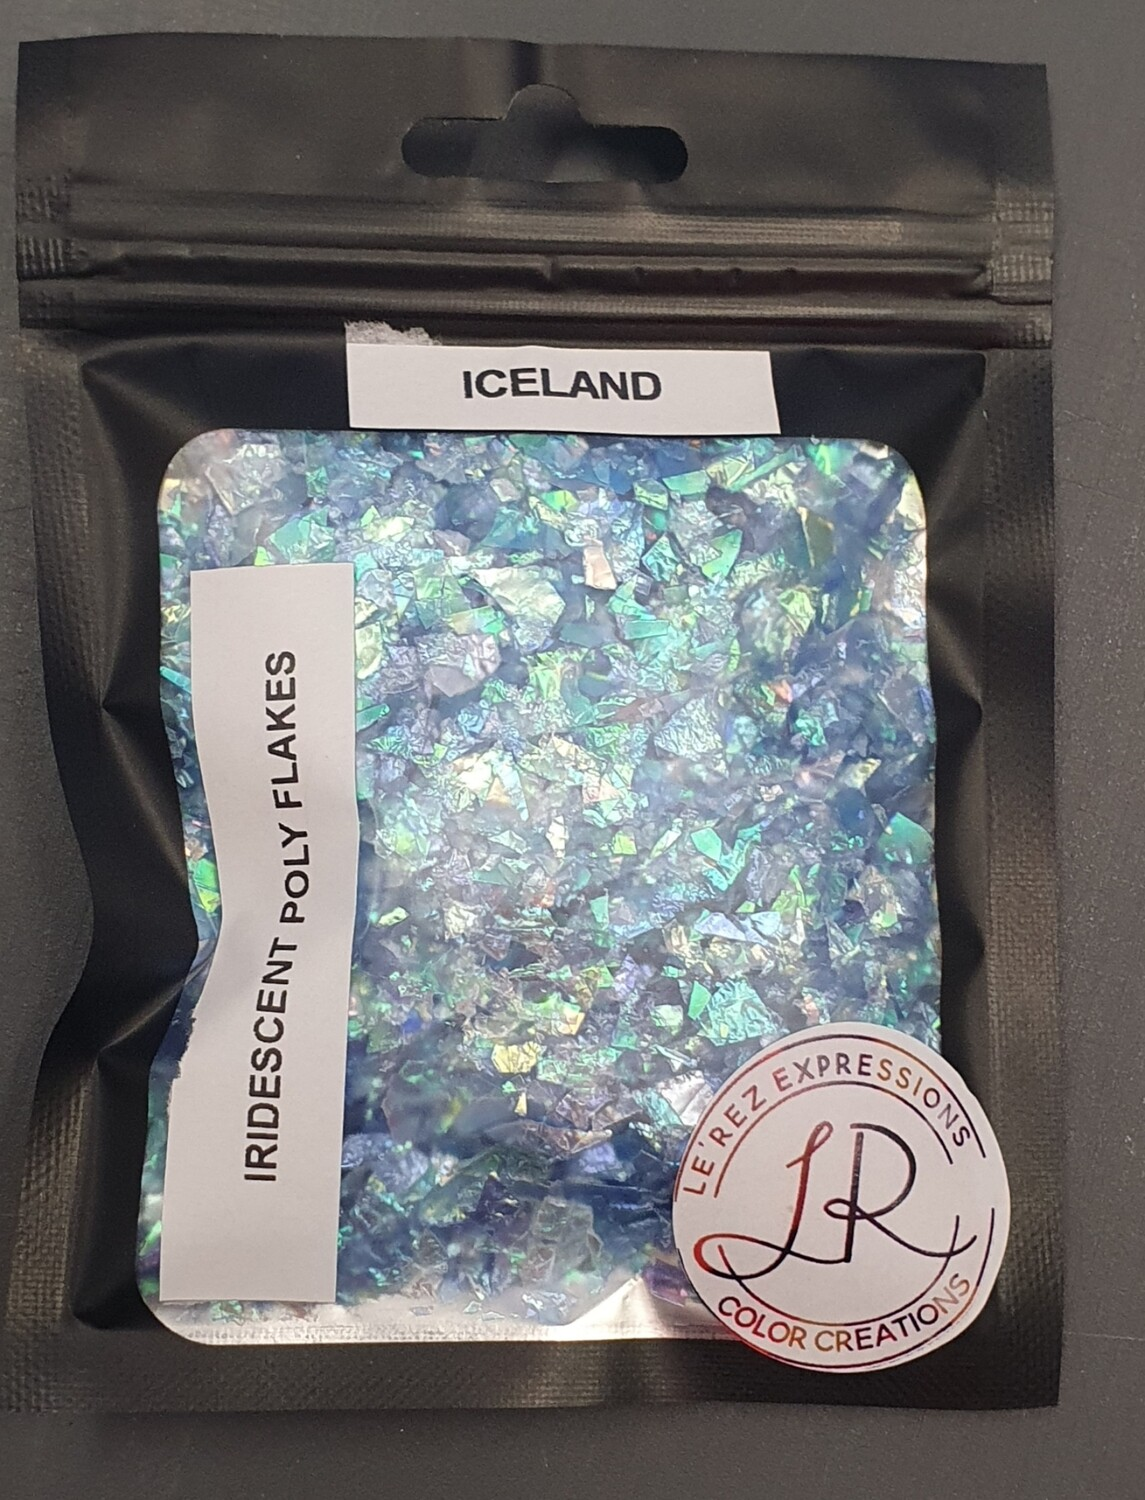 ICELAND BLUE Iridescent Polyester Flakes 10g window baggie